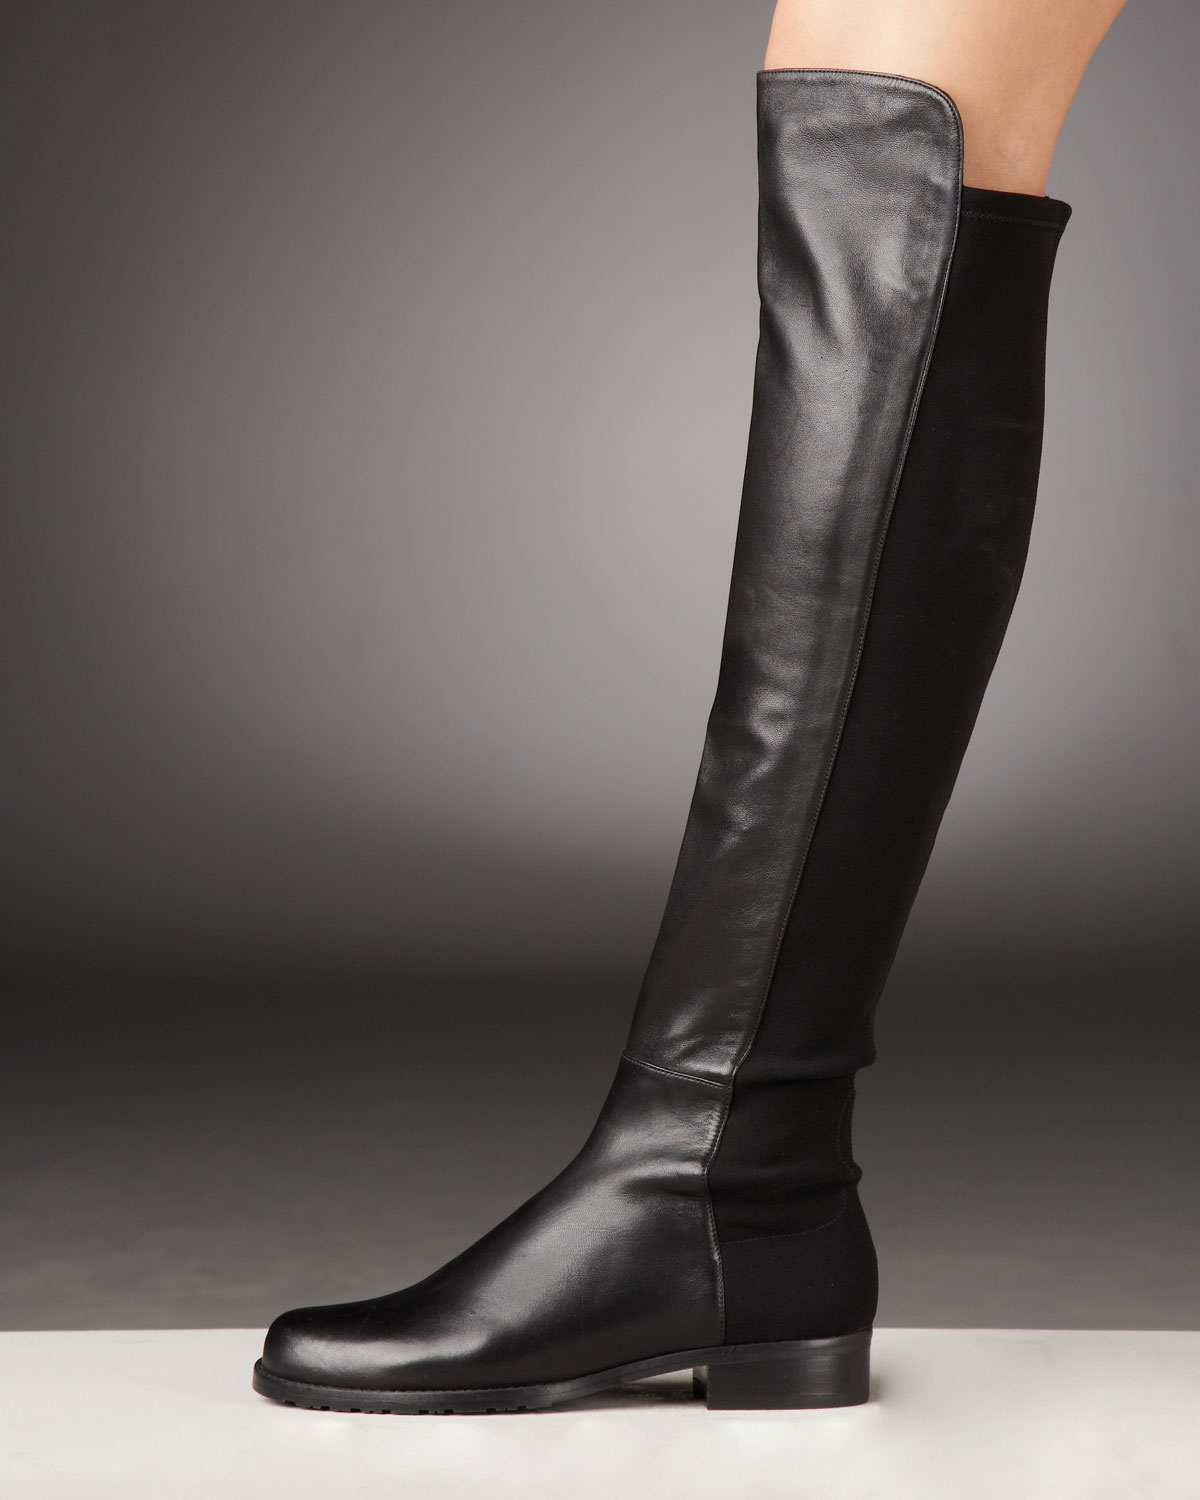 An Amazon brand - Bright metallic studs punctuate the suede upper of this knee-high boot with self-block heel. The Fix believes that a girl can never have too many shoes, bags, or Instagram followers, which is why our collection of lust-worthy shoes and handbags is designed for the truly shopping obsessed.